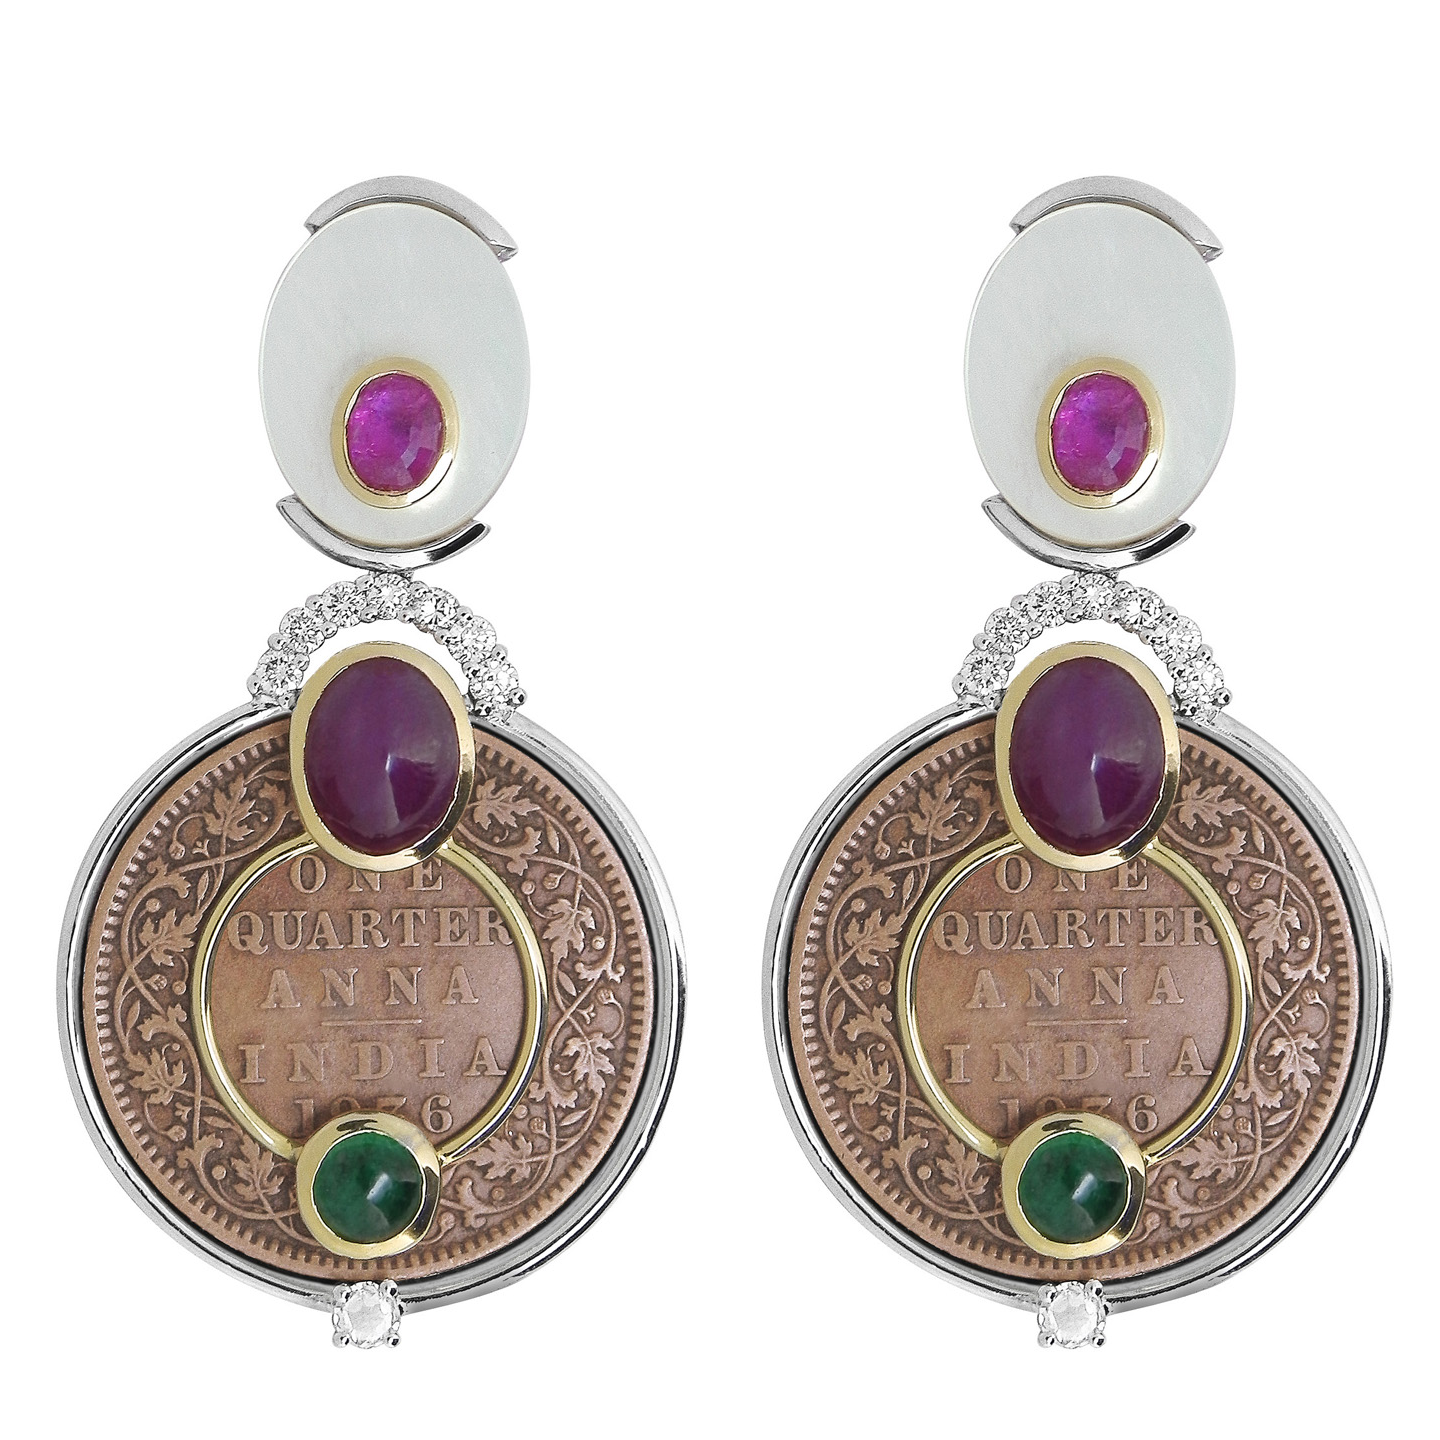 Impressive copper coin earrings in mix metal and gemstones